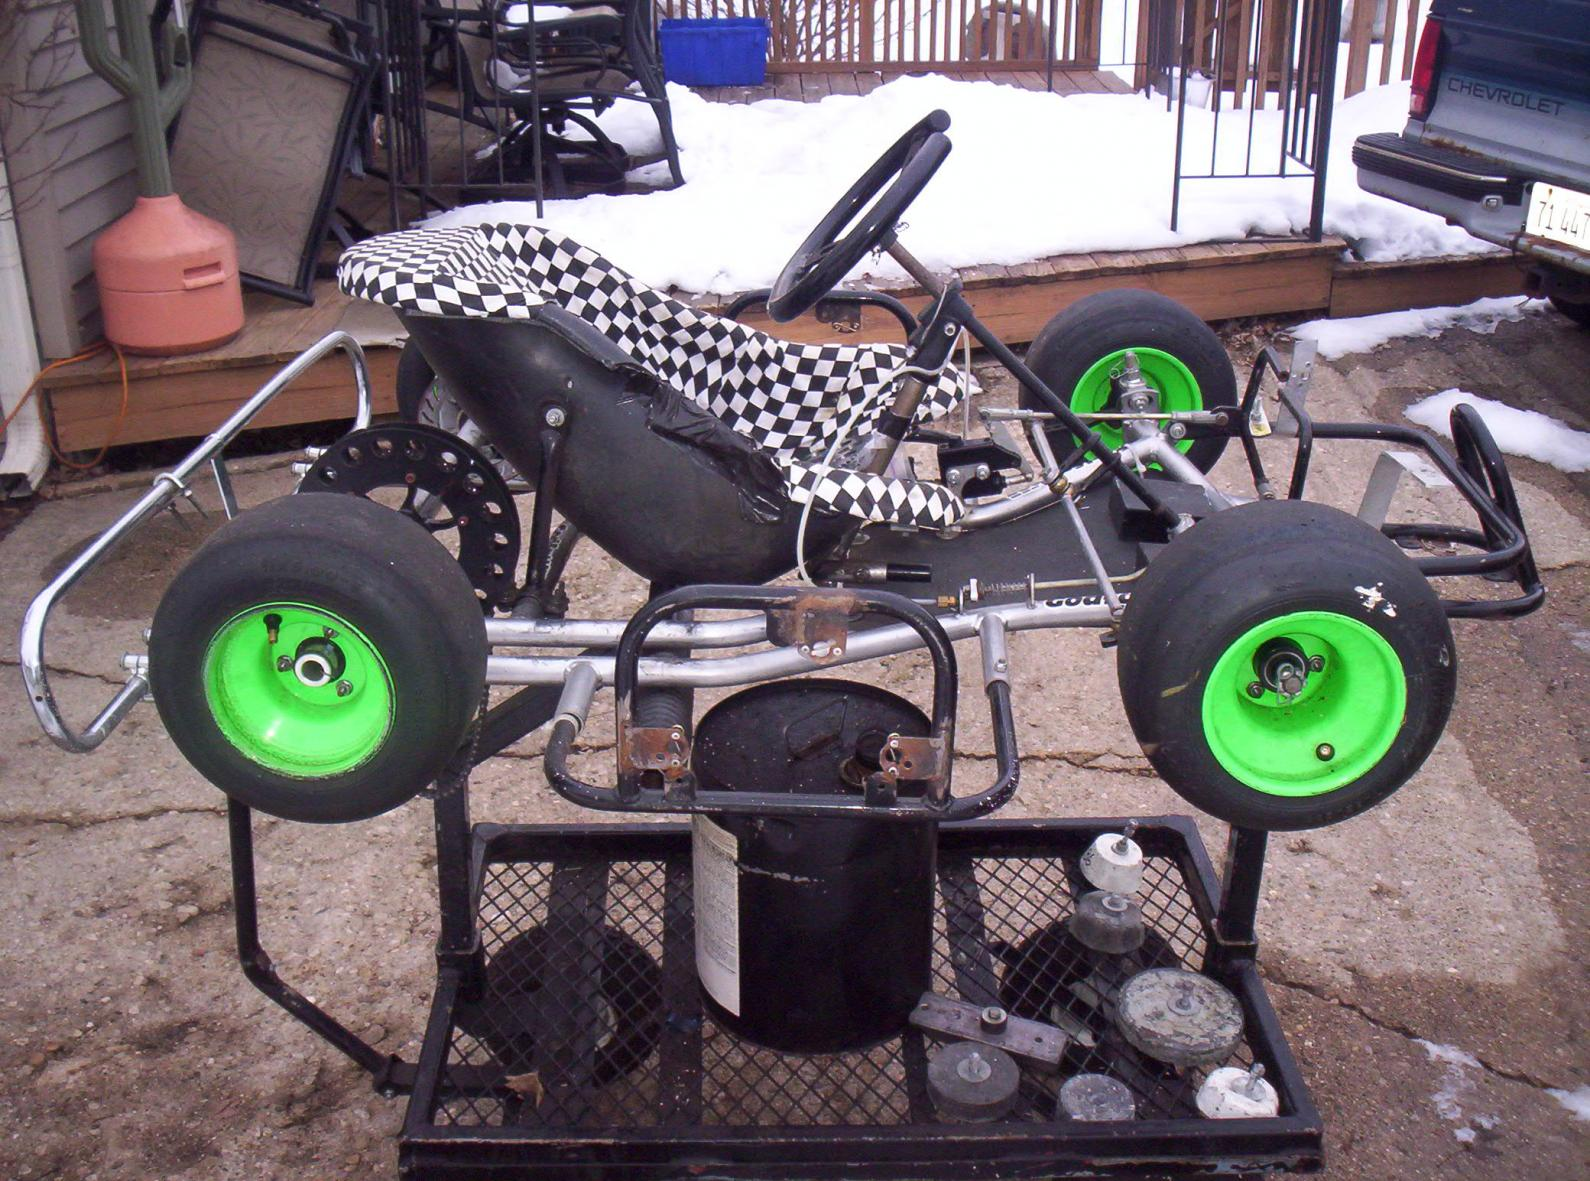 Dirt racing go karts for sale - Lookup BeforeBuying